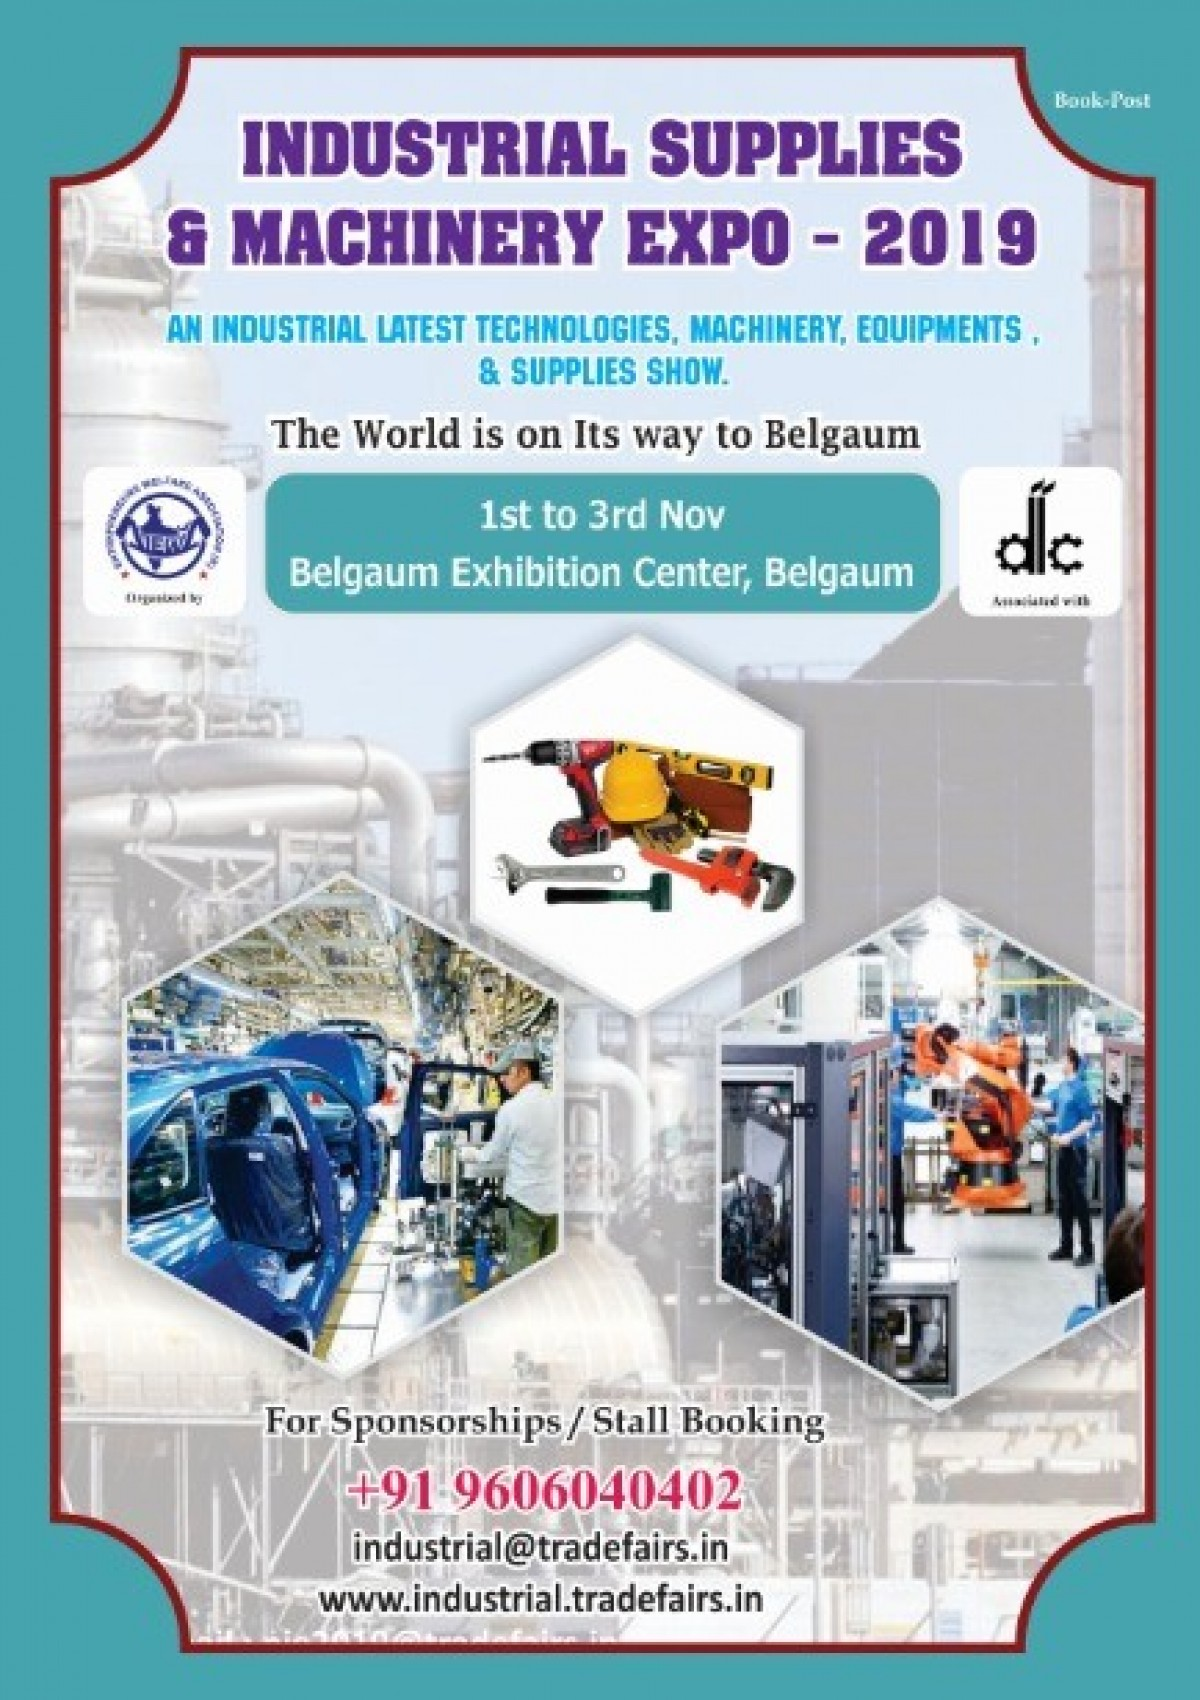 Industrial Supplies & Machinery Expo - 2019 @ Belgaum Exhibition Center